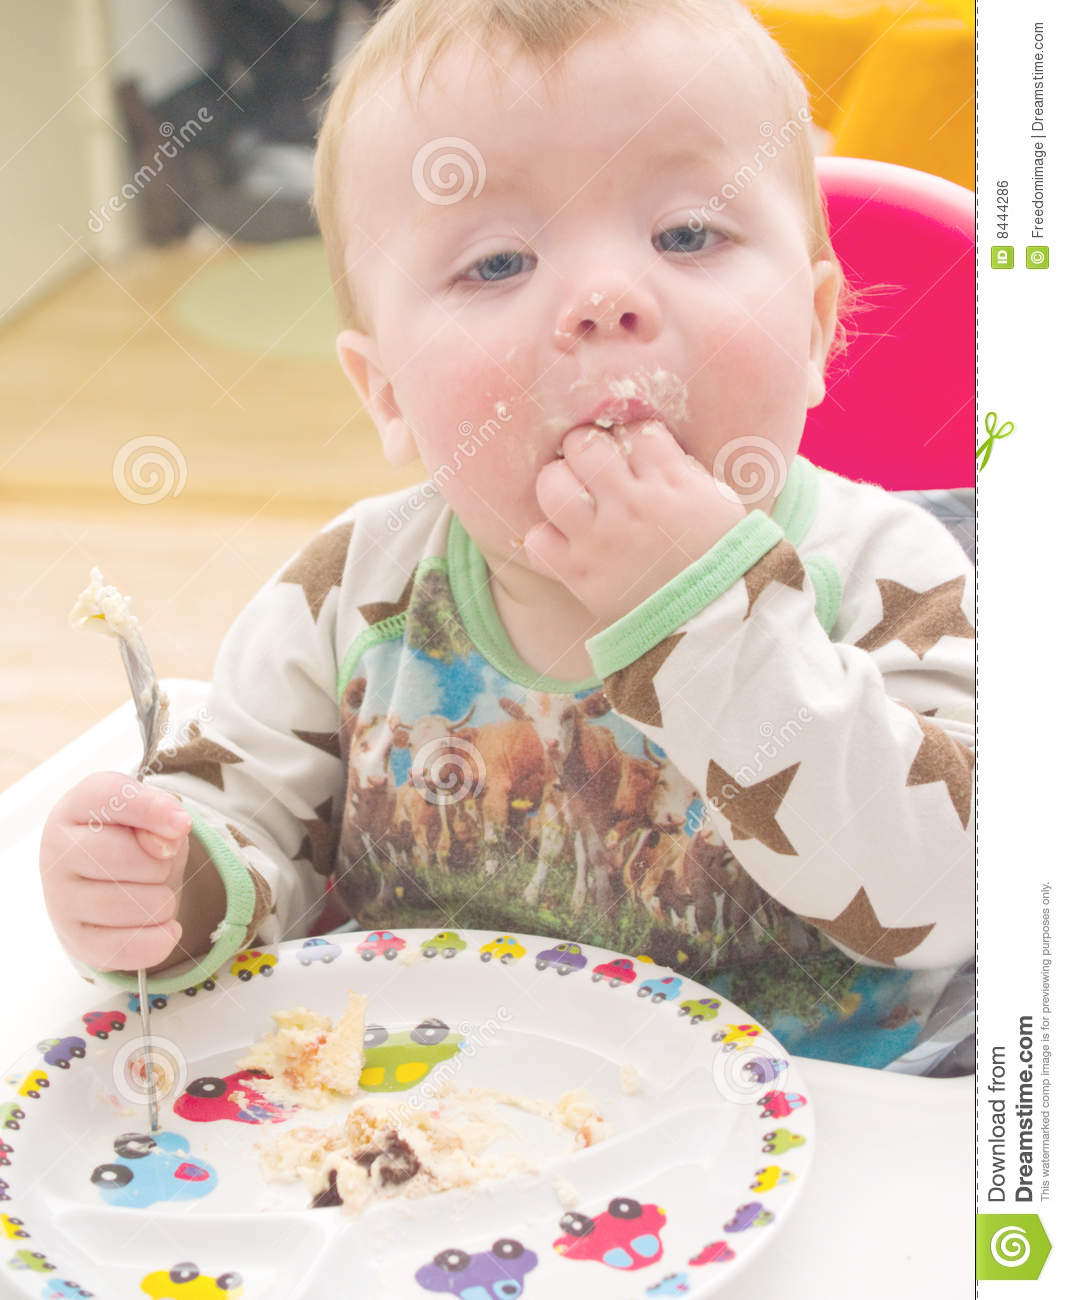 Images Baby Eating Birthday Cake : Baby On His First Birthday Eating Cake Royalty Free Stock ...